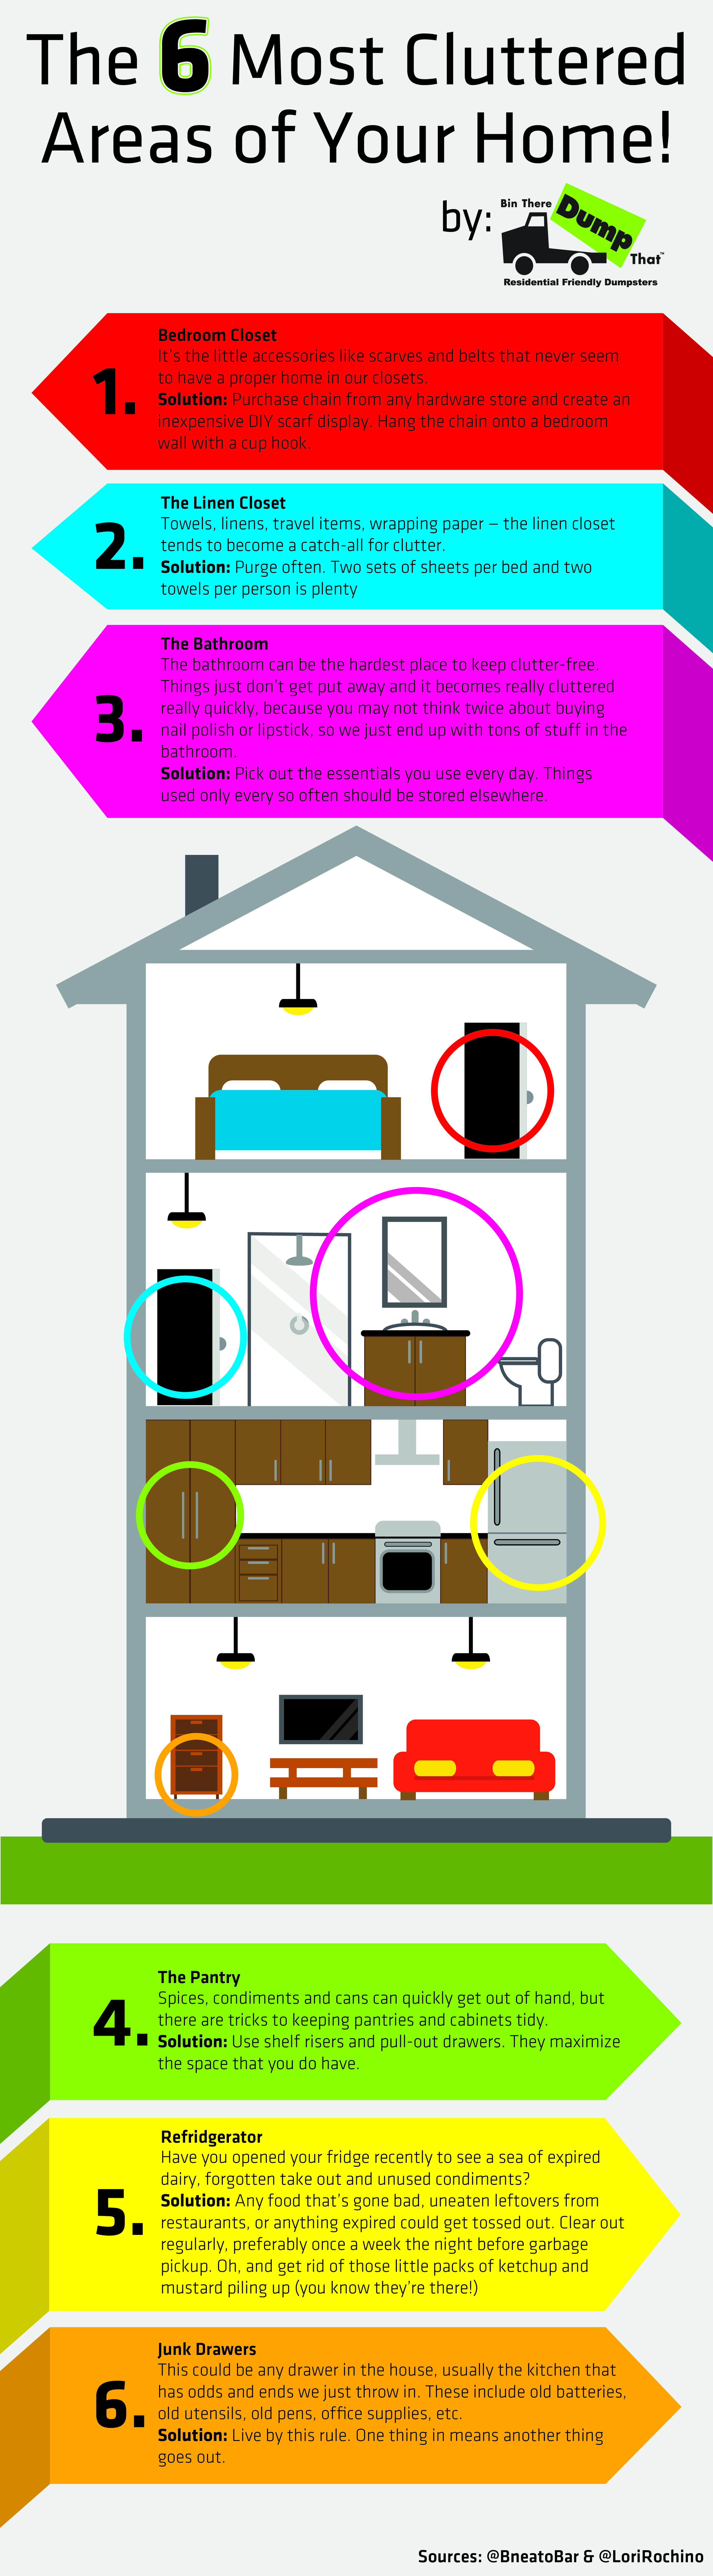 Infographic Cluttered Areas of Home & How To Keep Them Organized